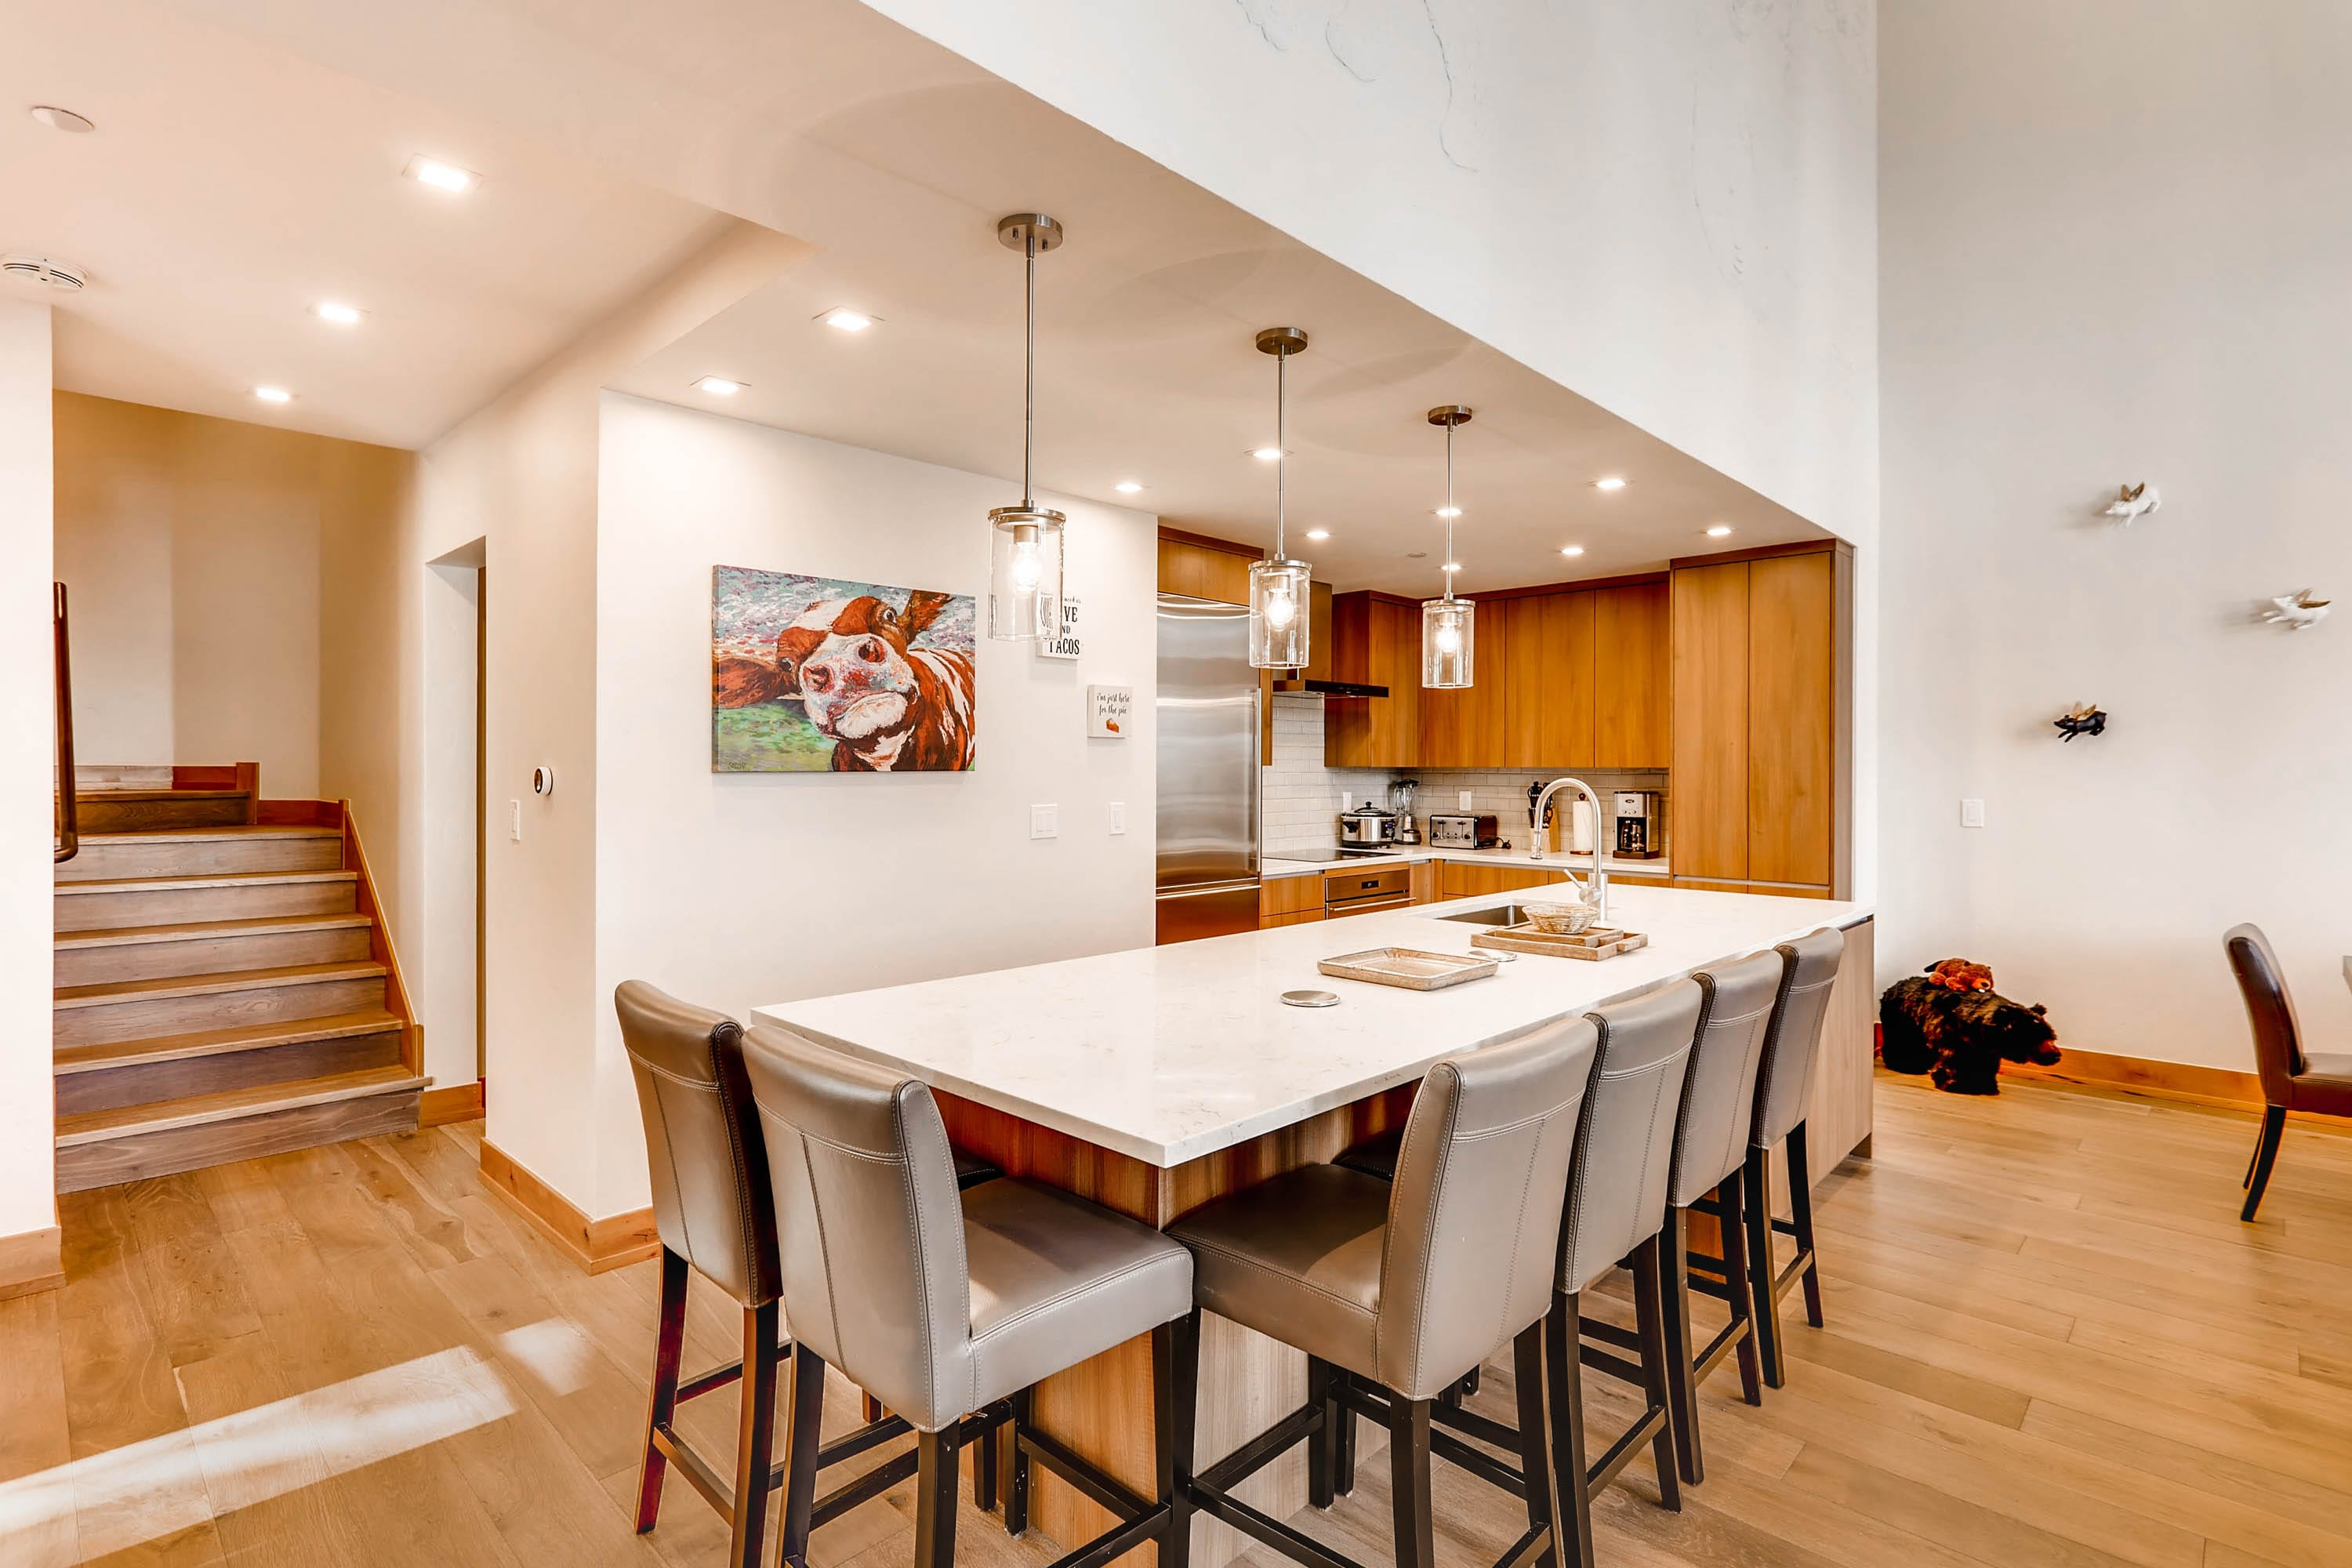 Property Image 1 - Contemporary Townhome in Beaver Creek with Patio